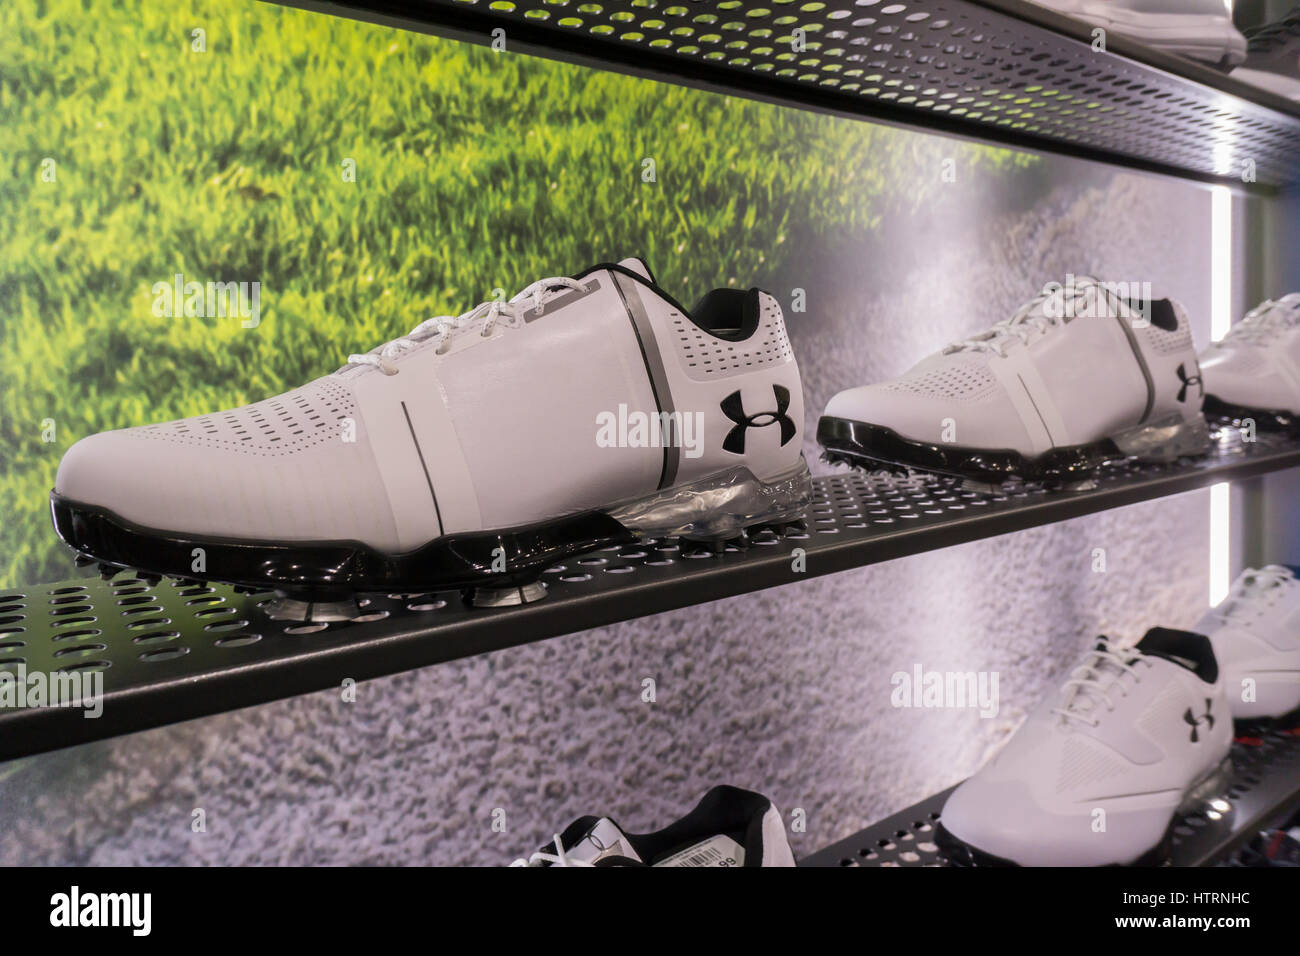 Under Armour brand golf shoes in the